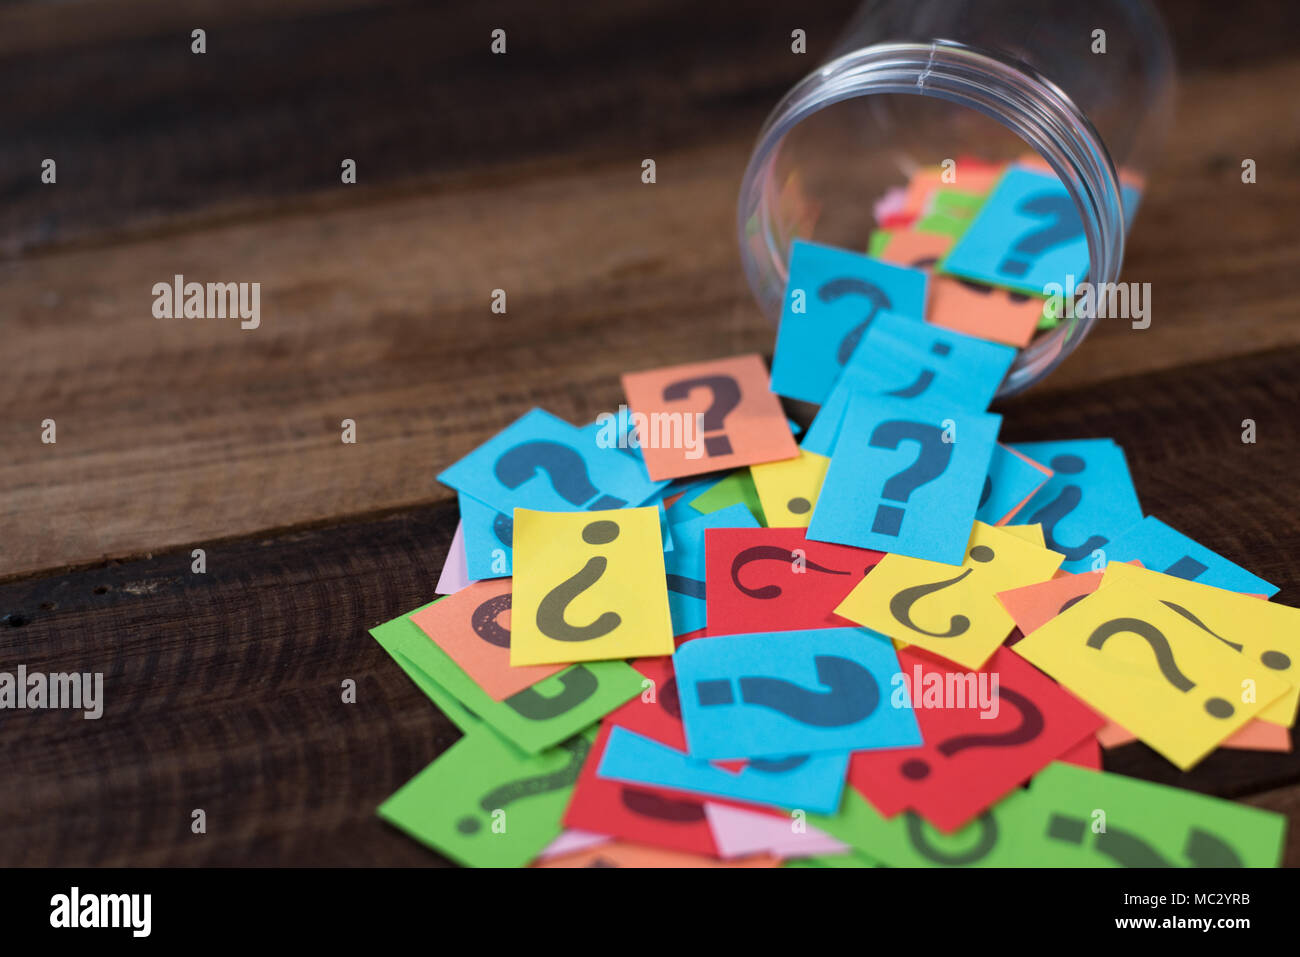 colorful paper with question mark in a plastic jar on wooden table. questions and diversity concept. FAQ and Q&A background concept - Stock Image